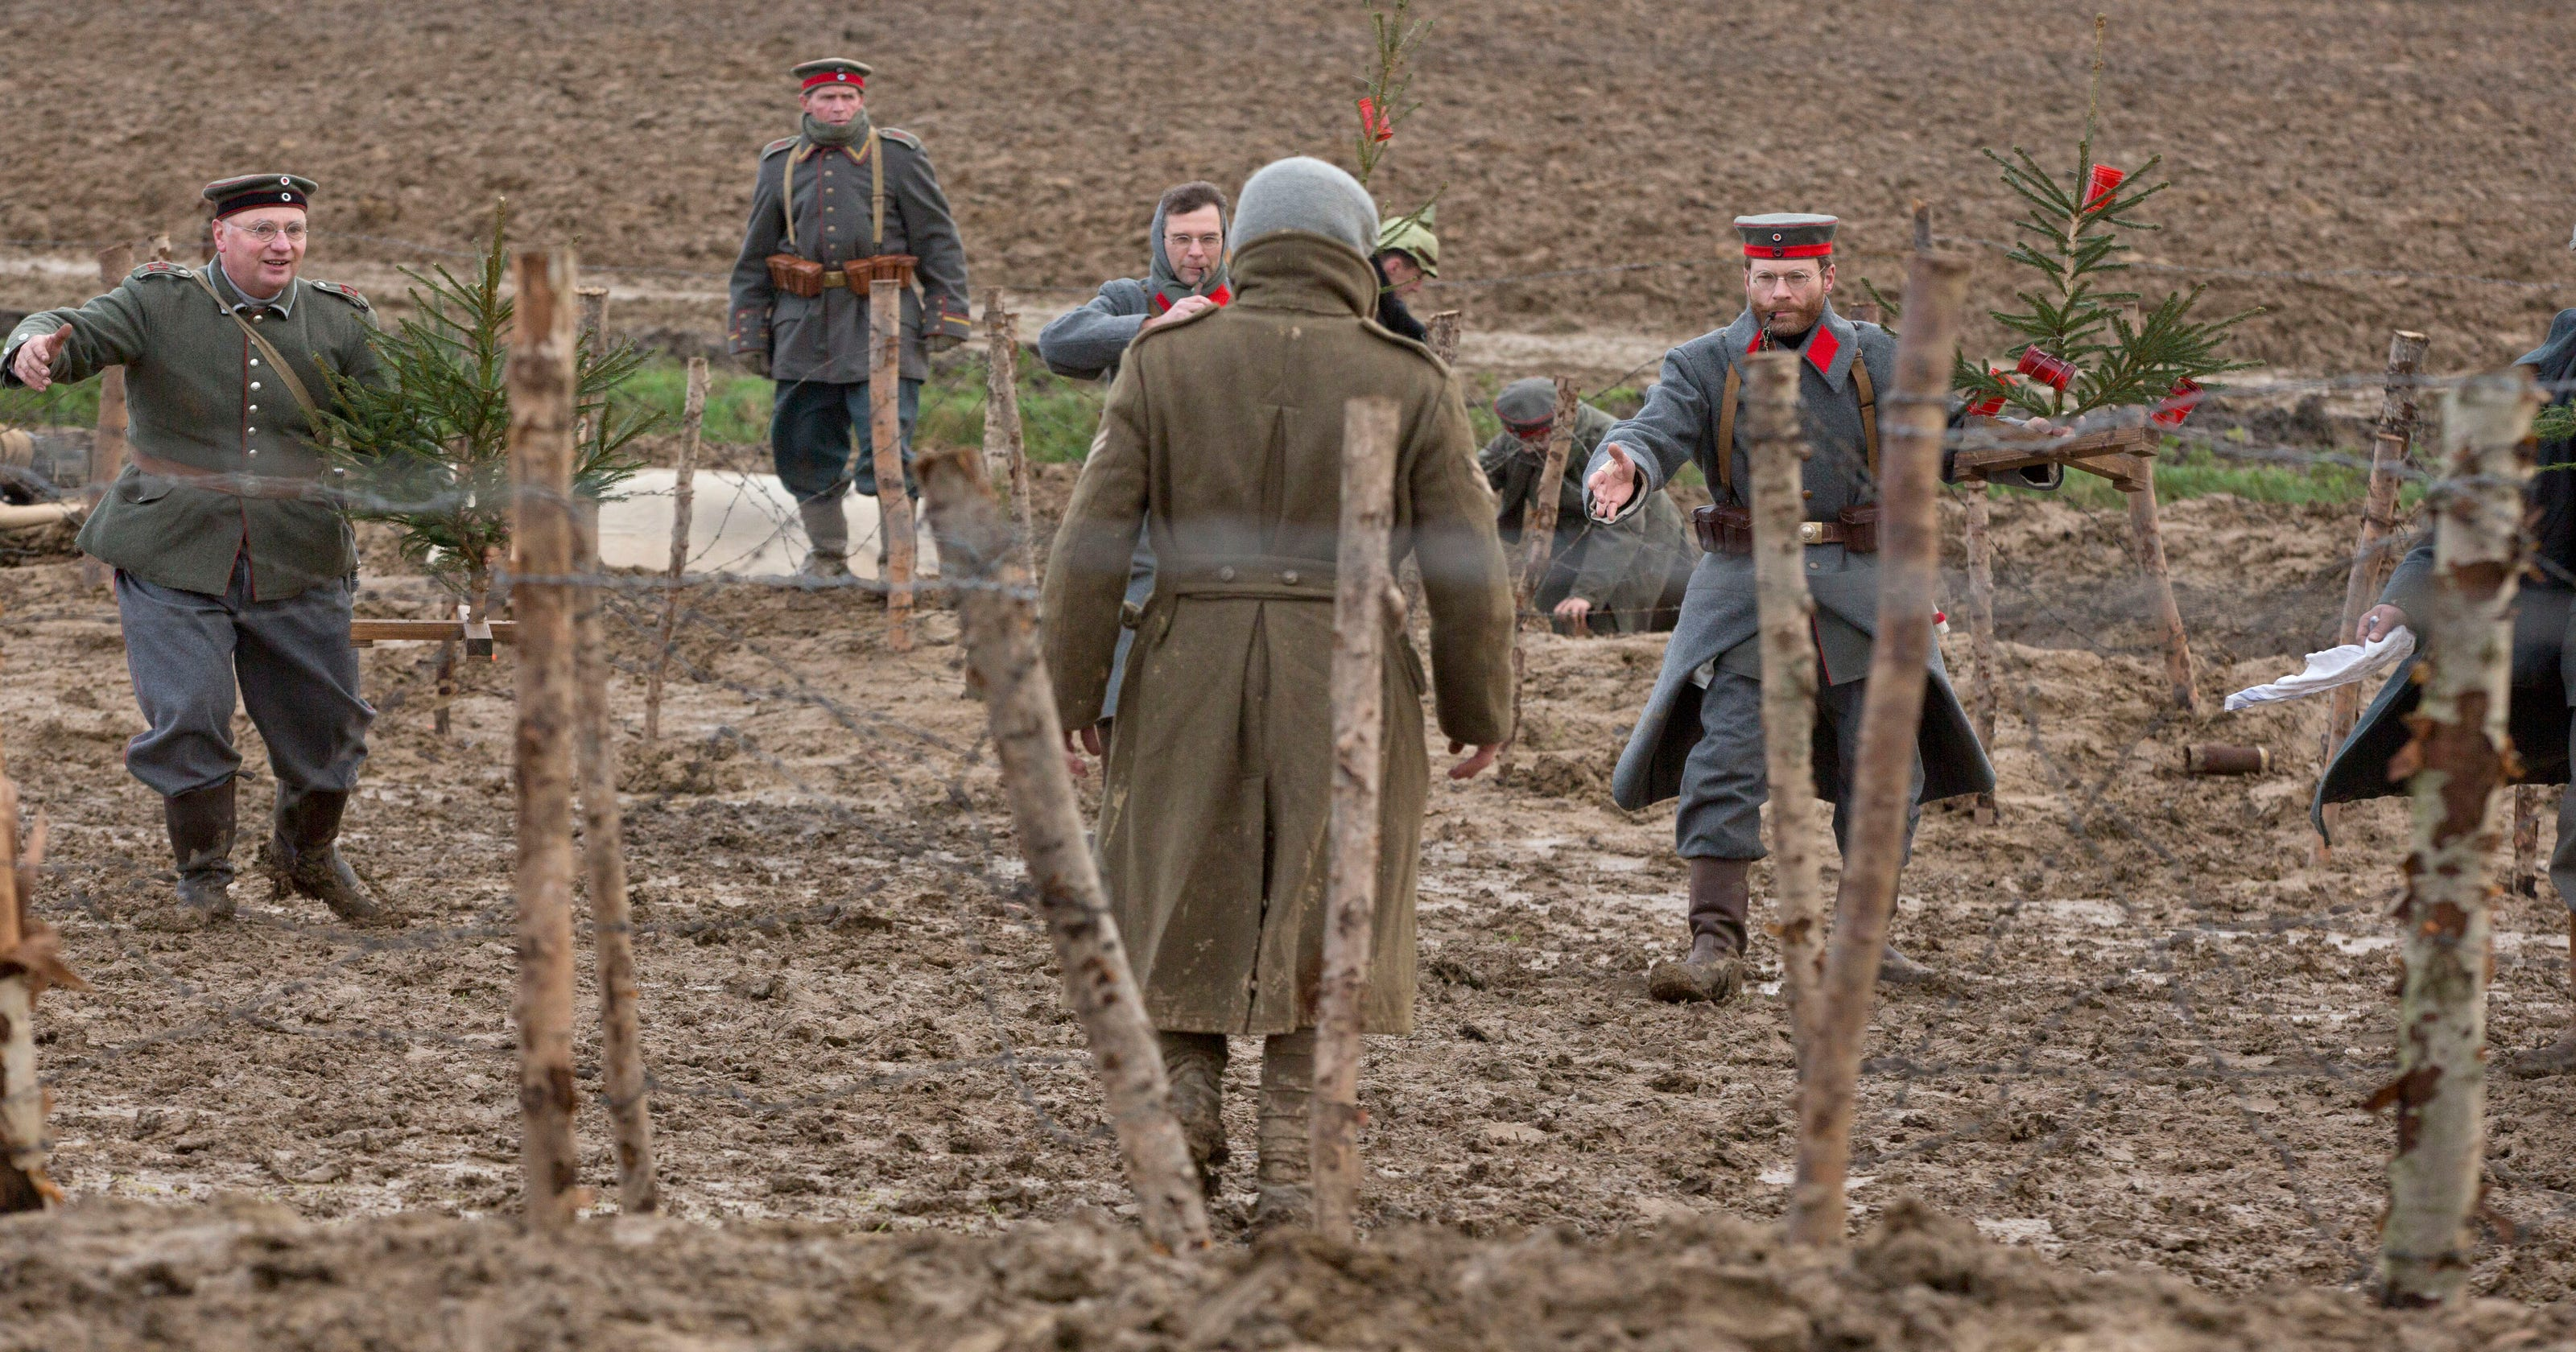 Christmas 1914.Christmas 1914 The Day Even Wwi Showed Humanity